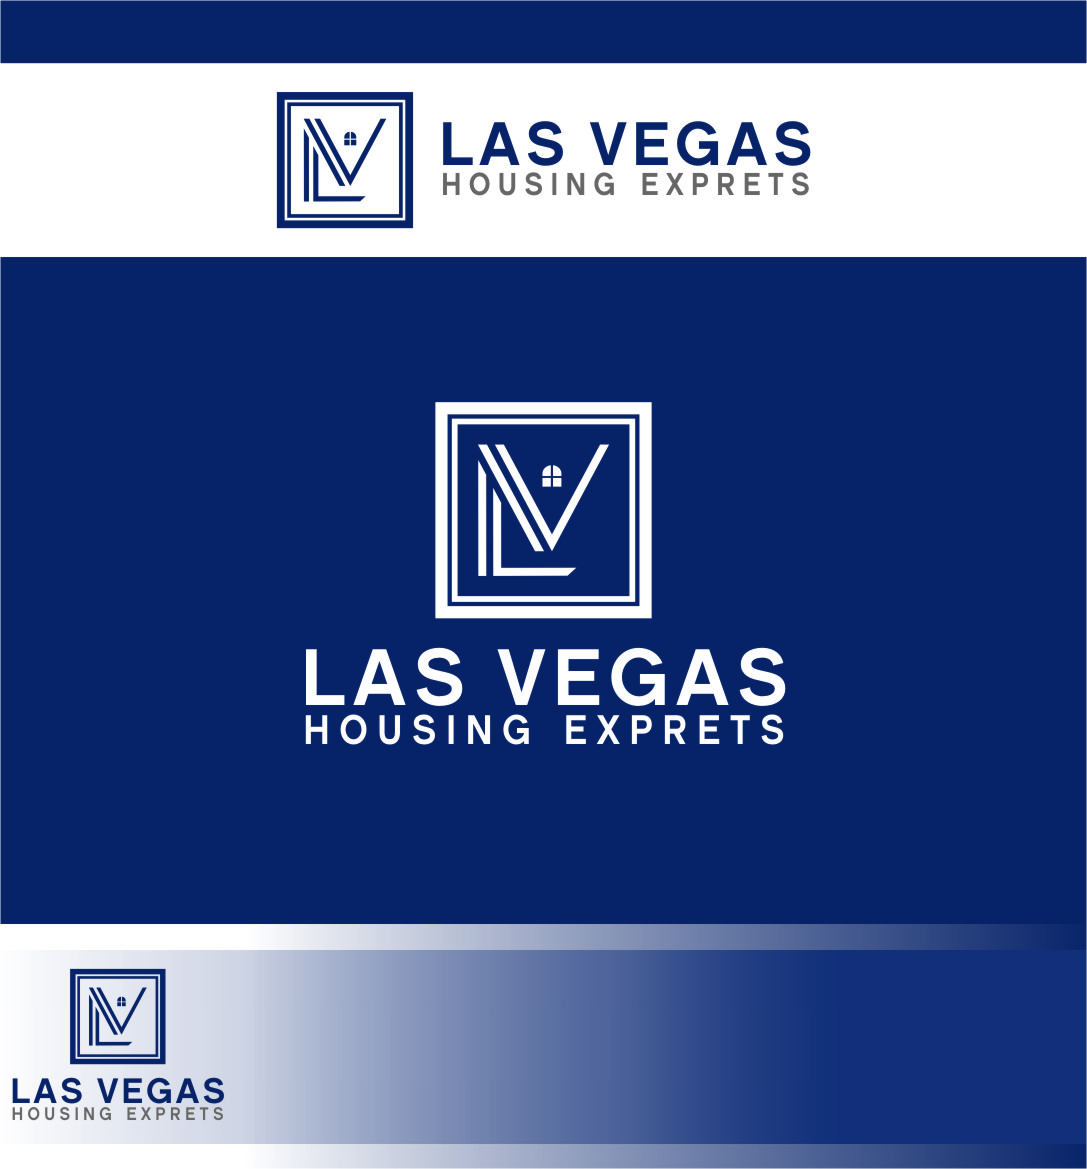 Logo Design by Ngepet_art - Entry No. 71 in the Logo Design Contest Las Vegas Housing Experts Logo Design.